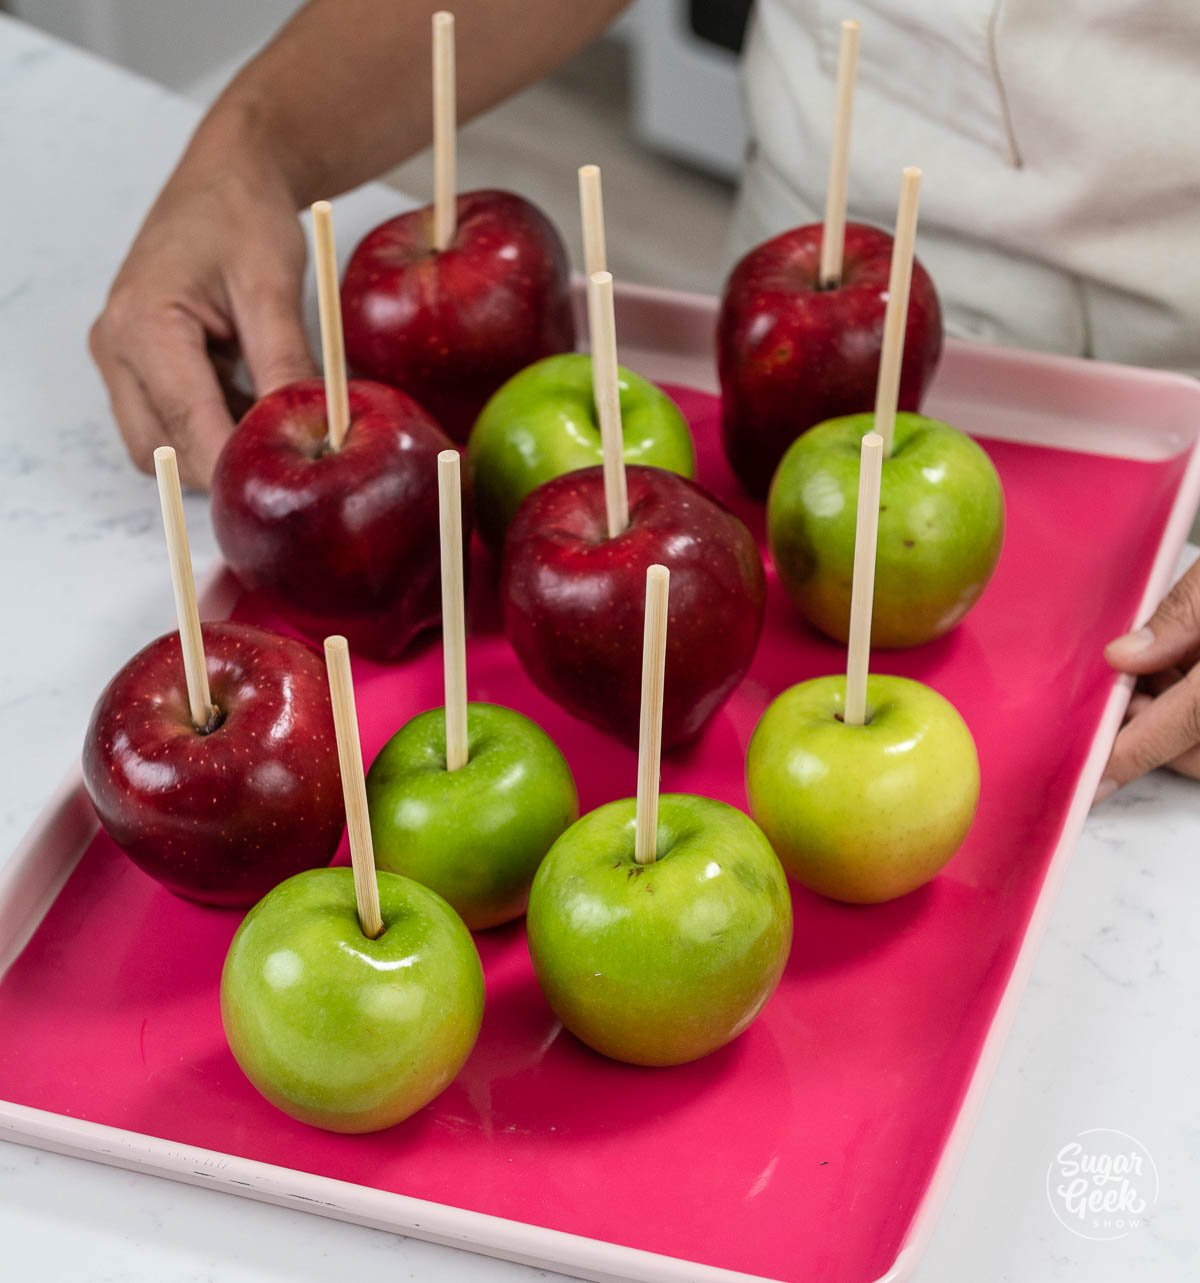 green and red apples on a sheetpan with a pink silicone mat